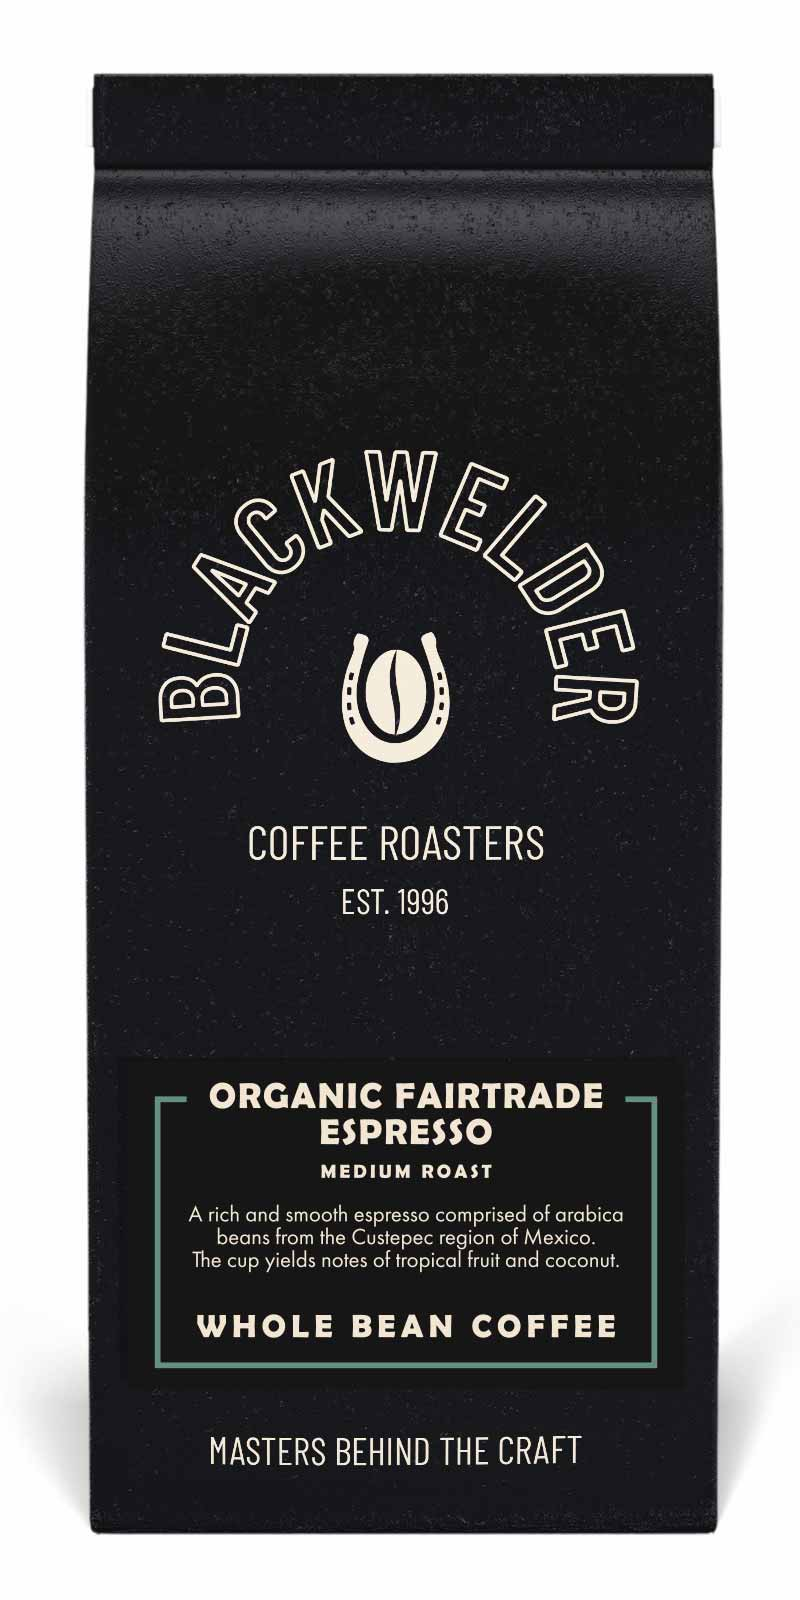 Organic Fair Trade Espresso